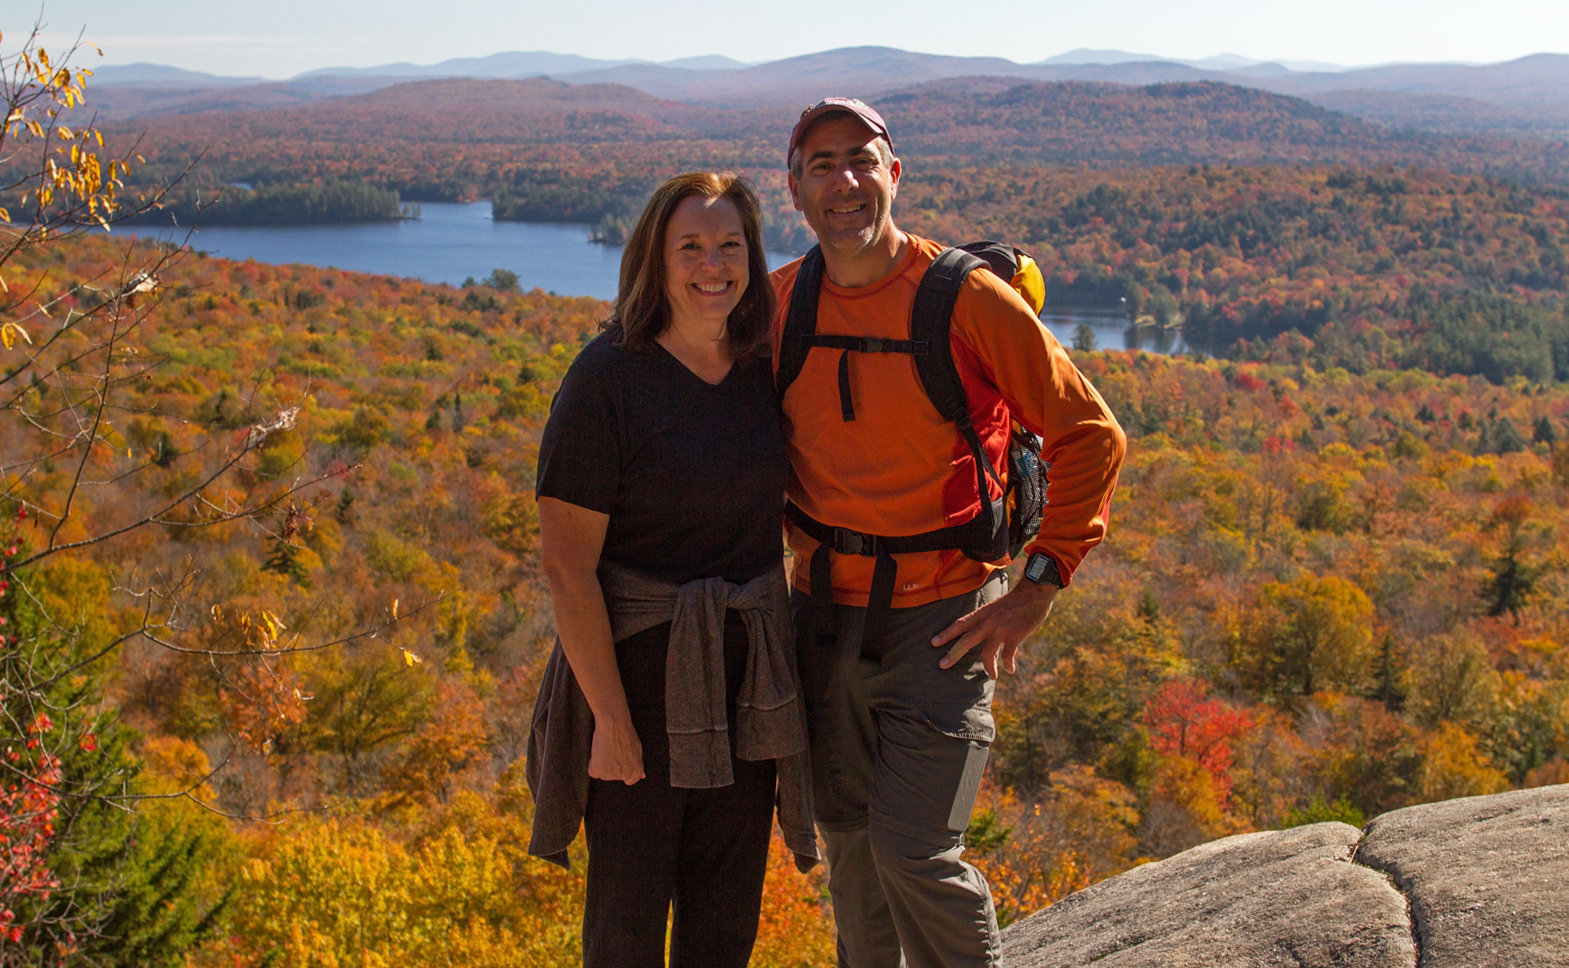 Julie & I atop of Bald Mountain October 12th 2015. Image © Michael Geronimo.